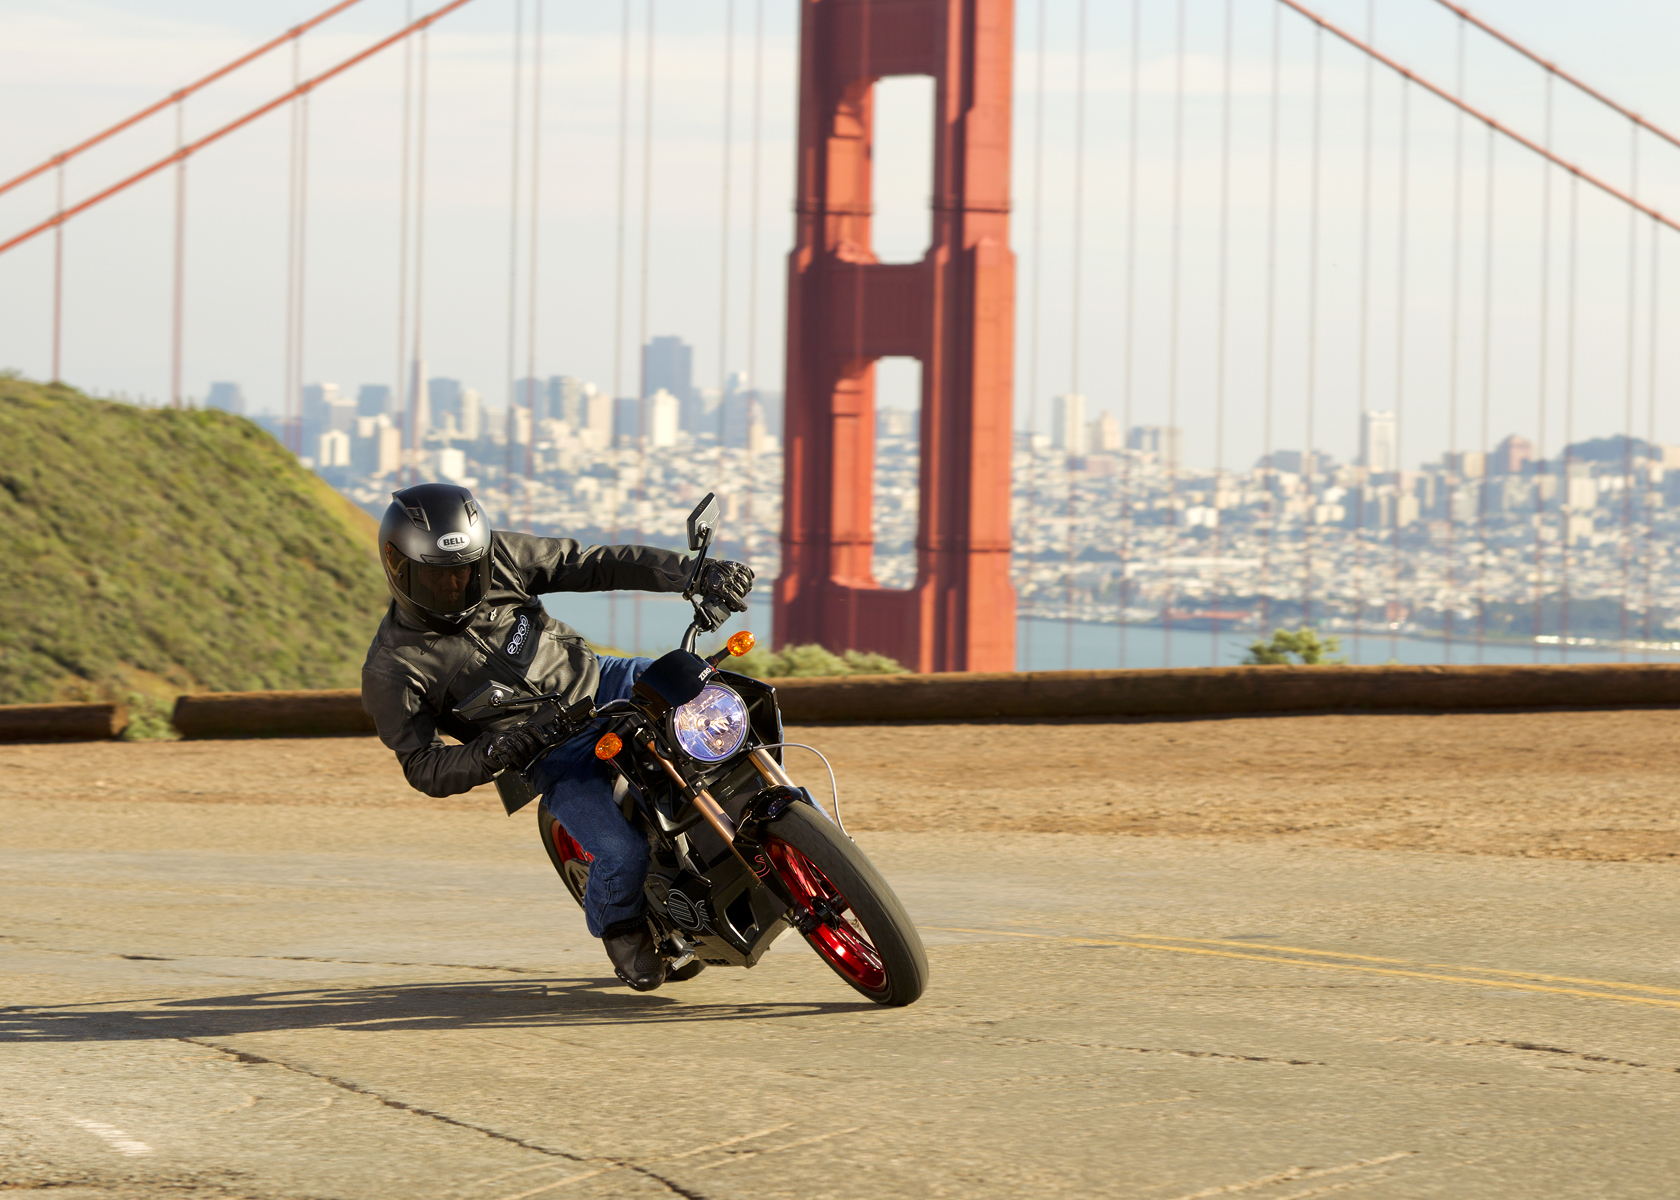 '.2011 Zero S Electric Motorcycle: Sideways Turn by the Golden Gate Bridge.'